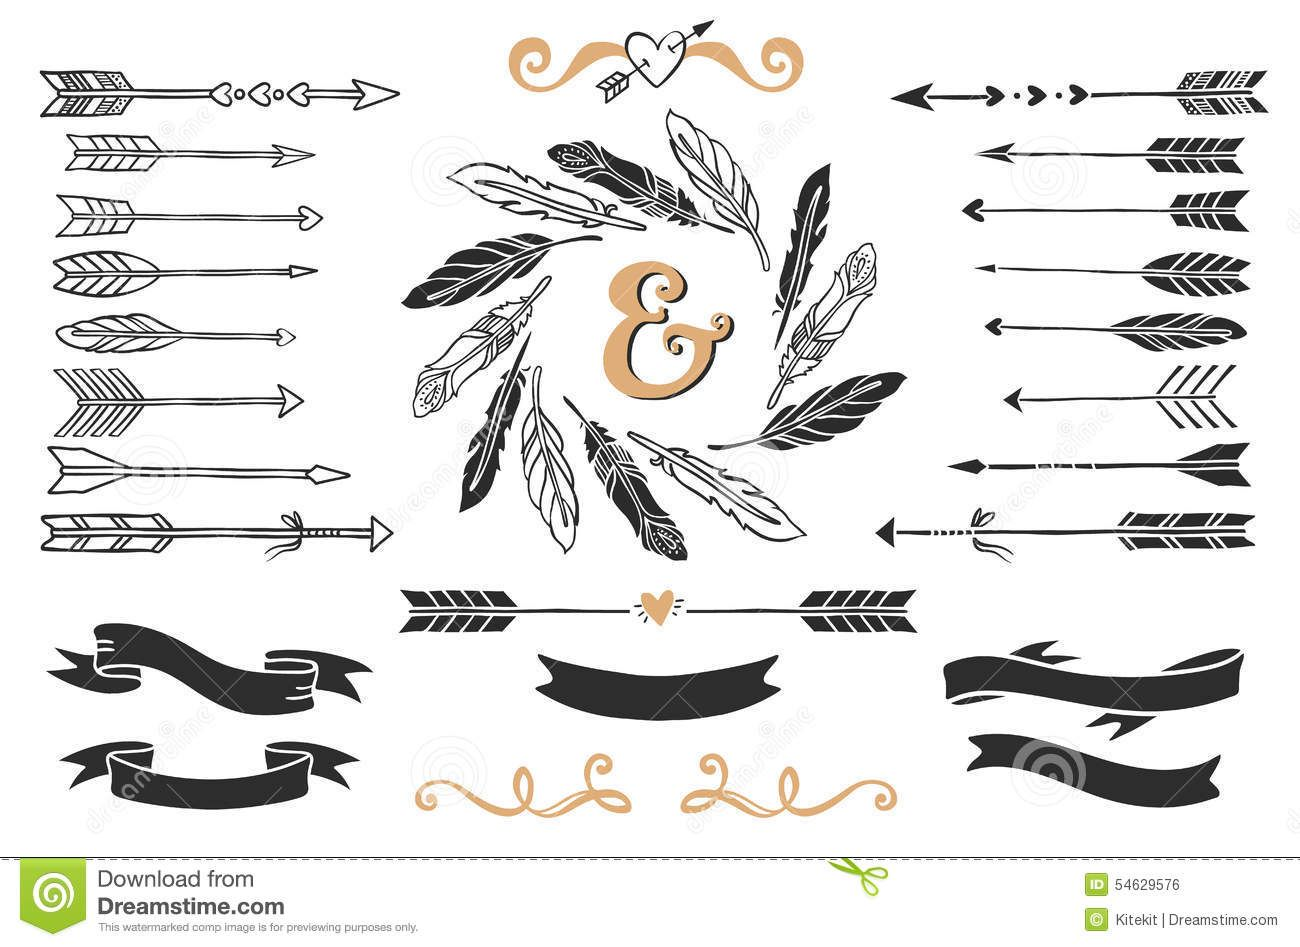 Vintage hand arrow clipart jpg freeuse stock Hand Drawn Vintage Arrows, Feathers, And Ribbons With ... jpg freeuse stock